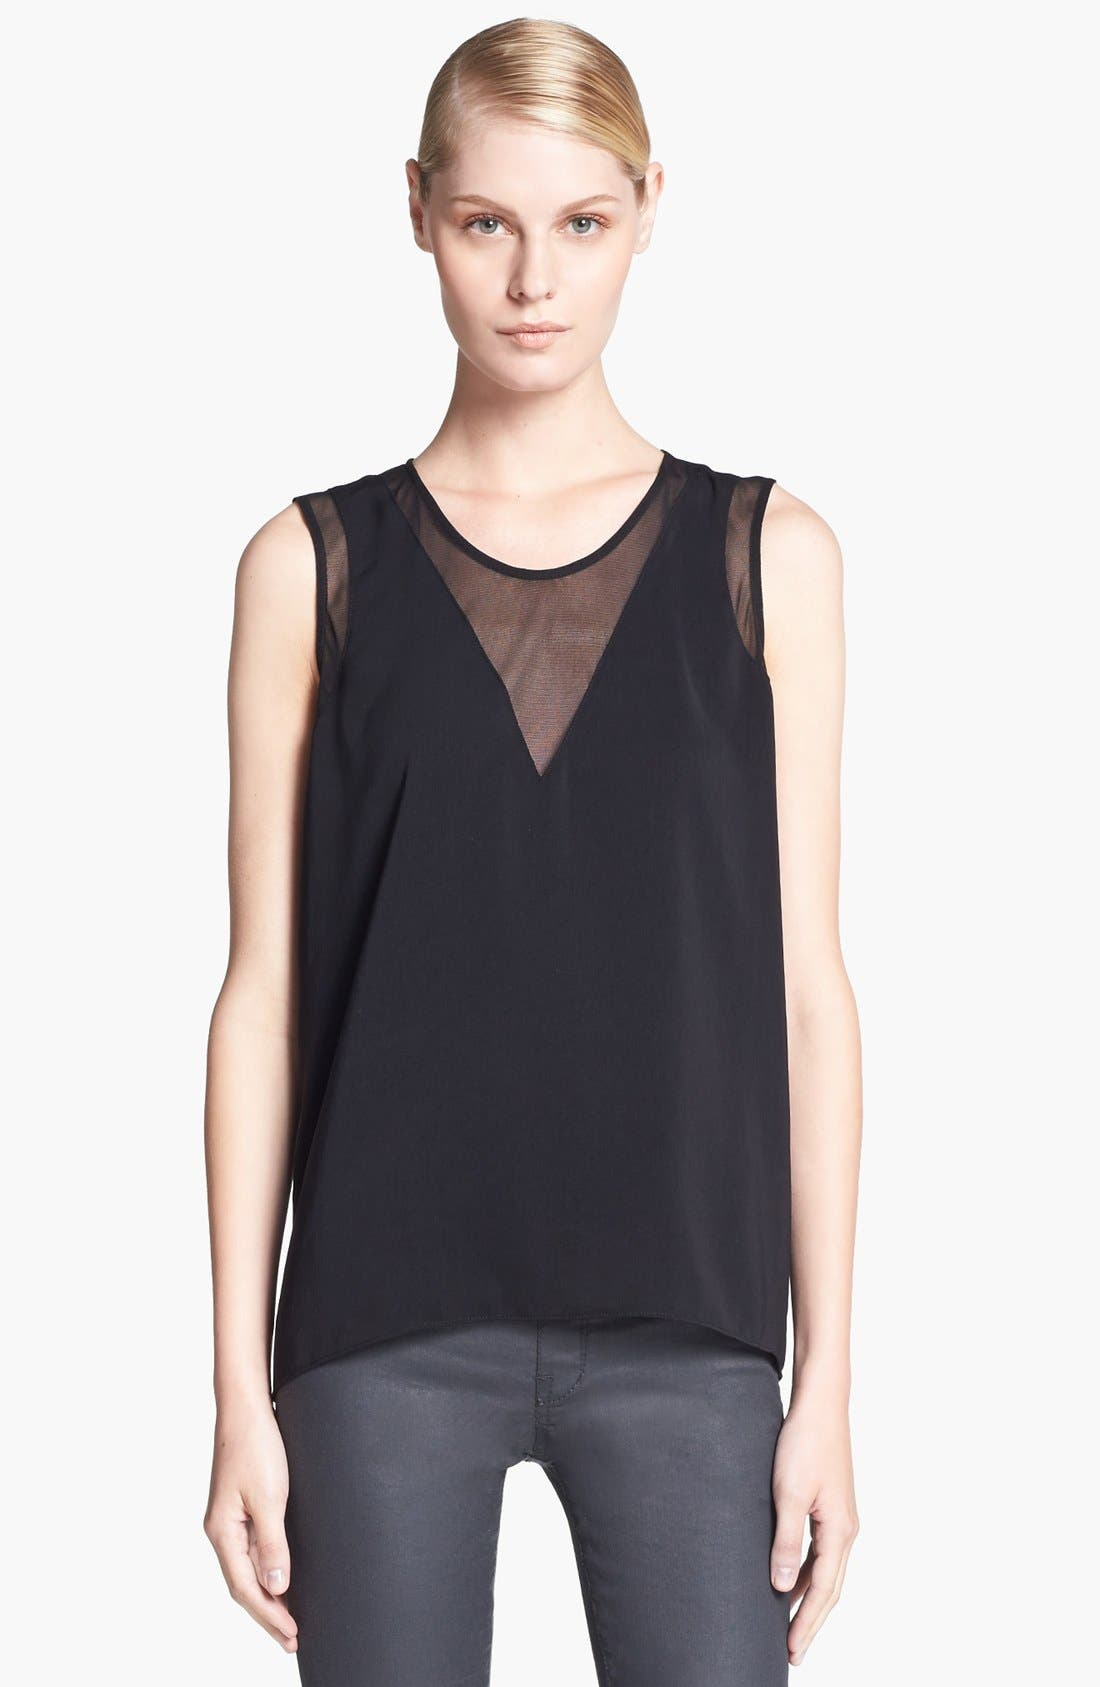 Alternate Image 1 Selected - HELMUT Helmut Lang 'Nexa' Mesh Inset Top